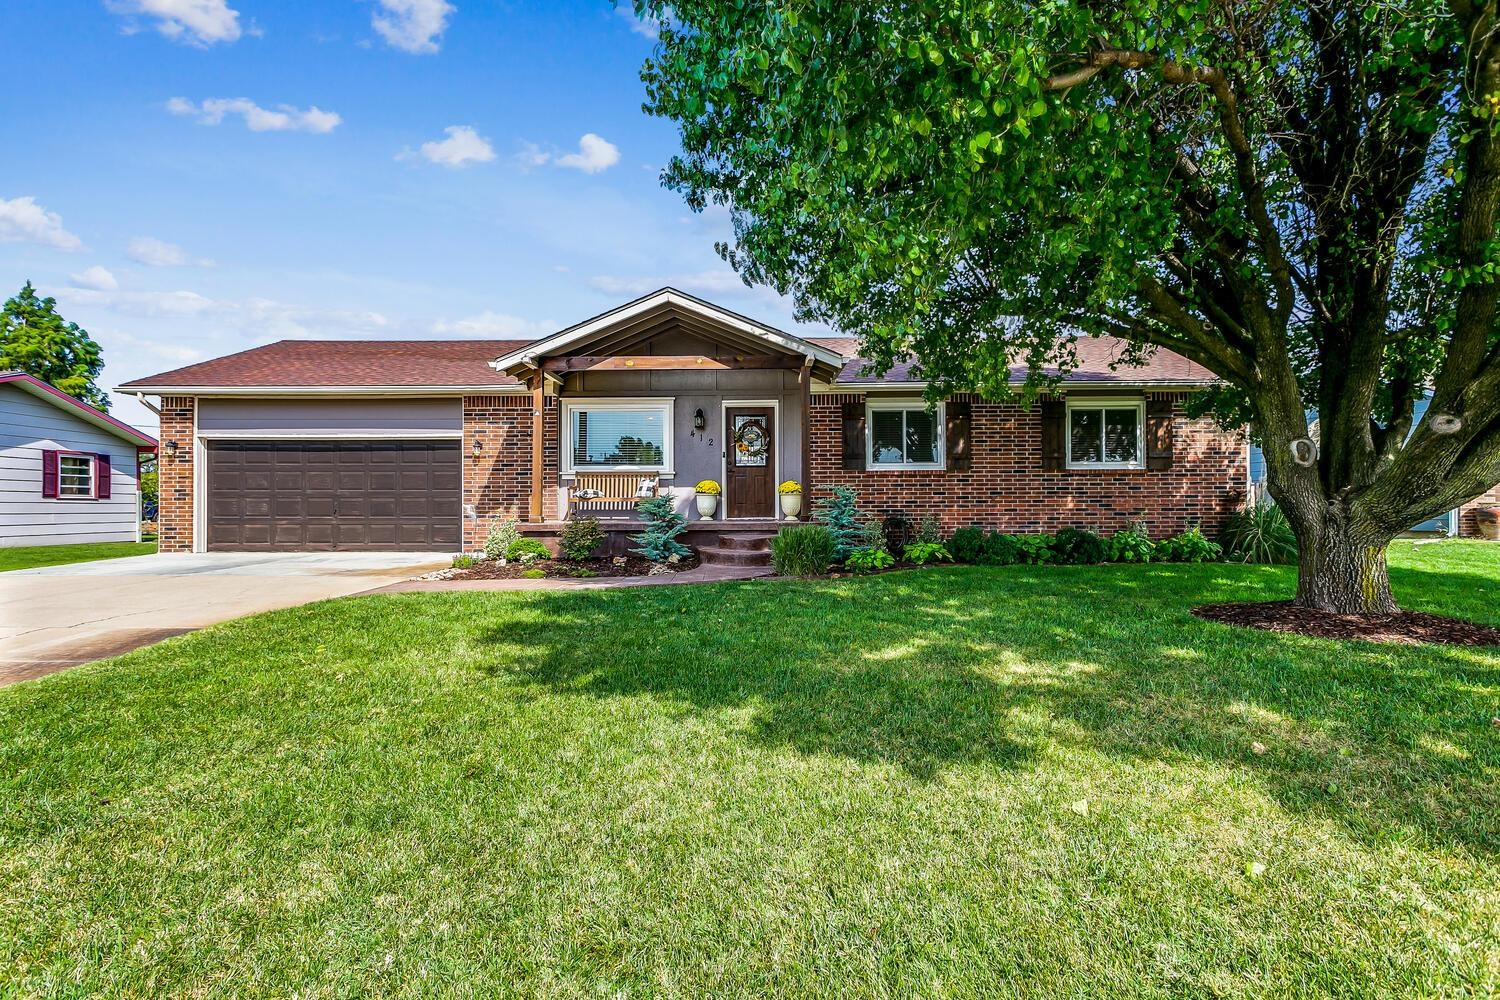 Adorable, updated home located on a cul-de-sac in Maize.  You will fall in love with the open floorp